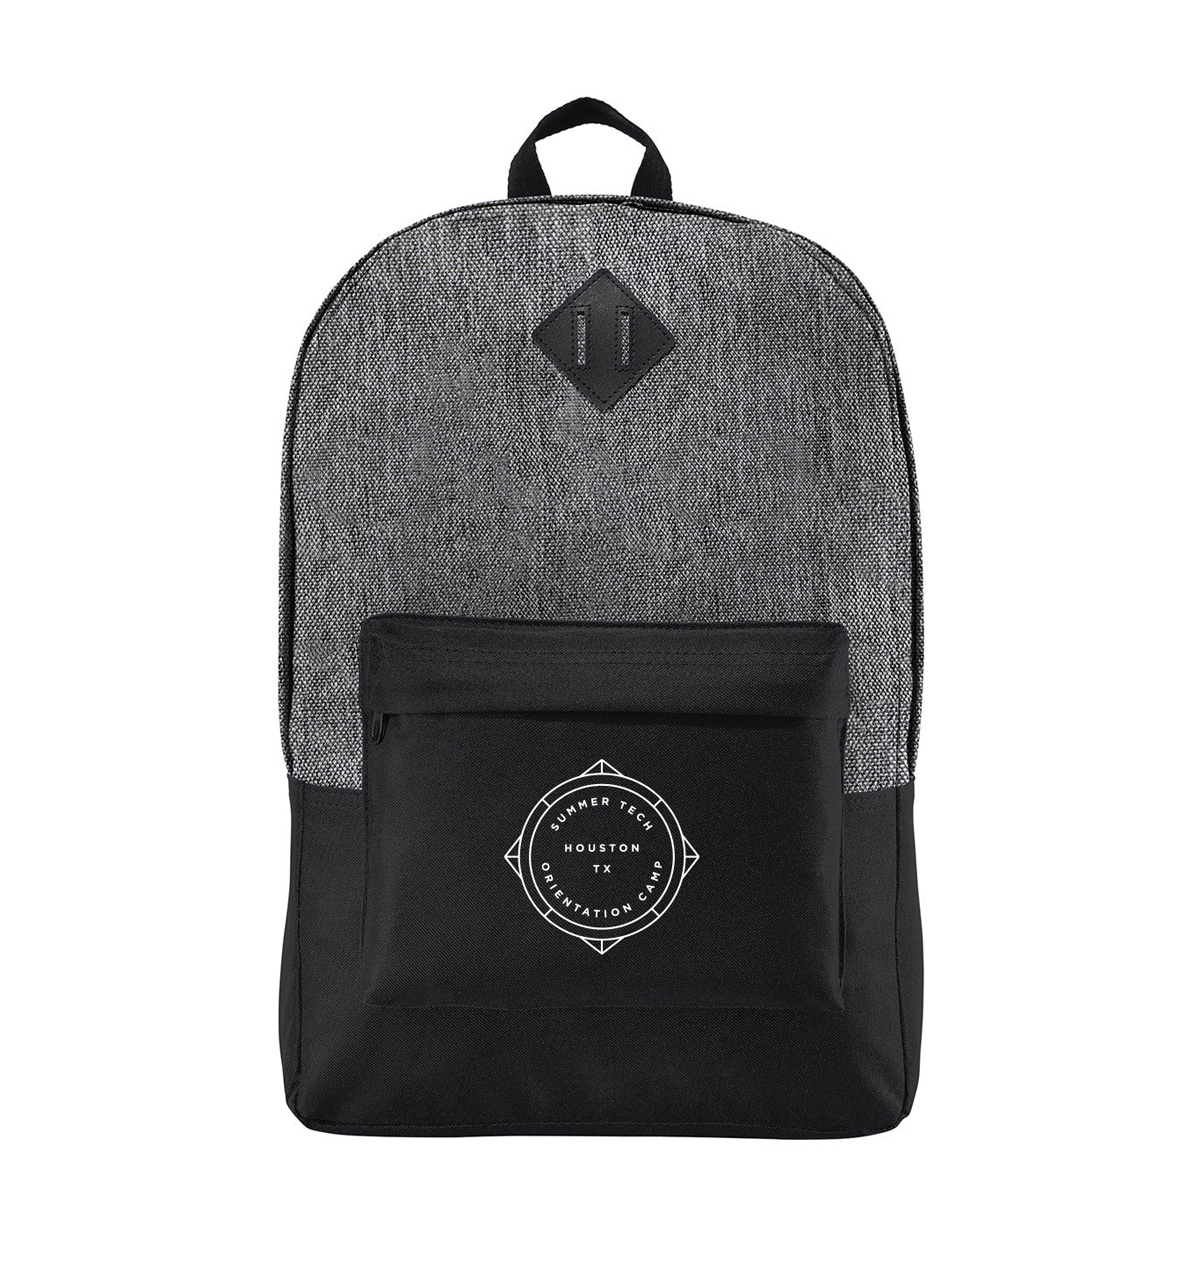 apdat-embroidery-port-authority-retro-backpack